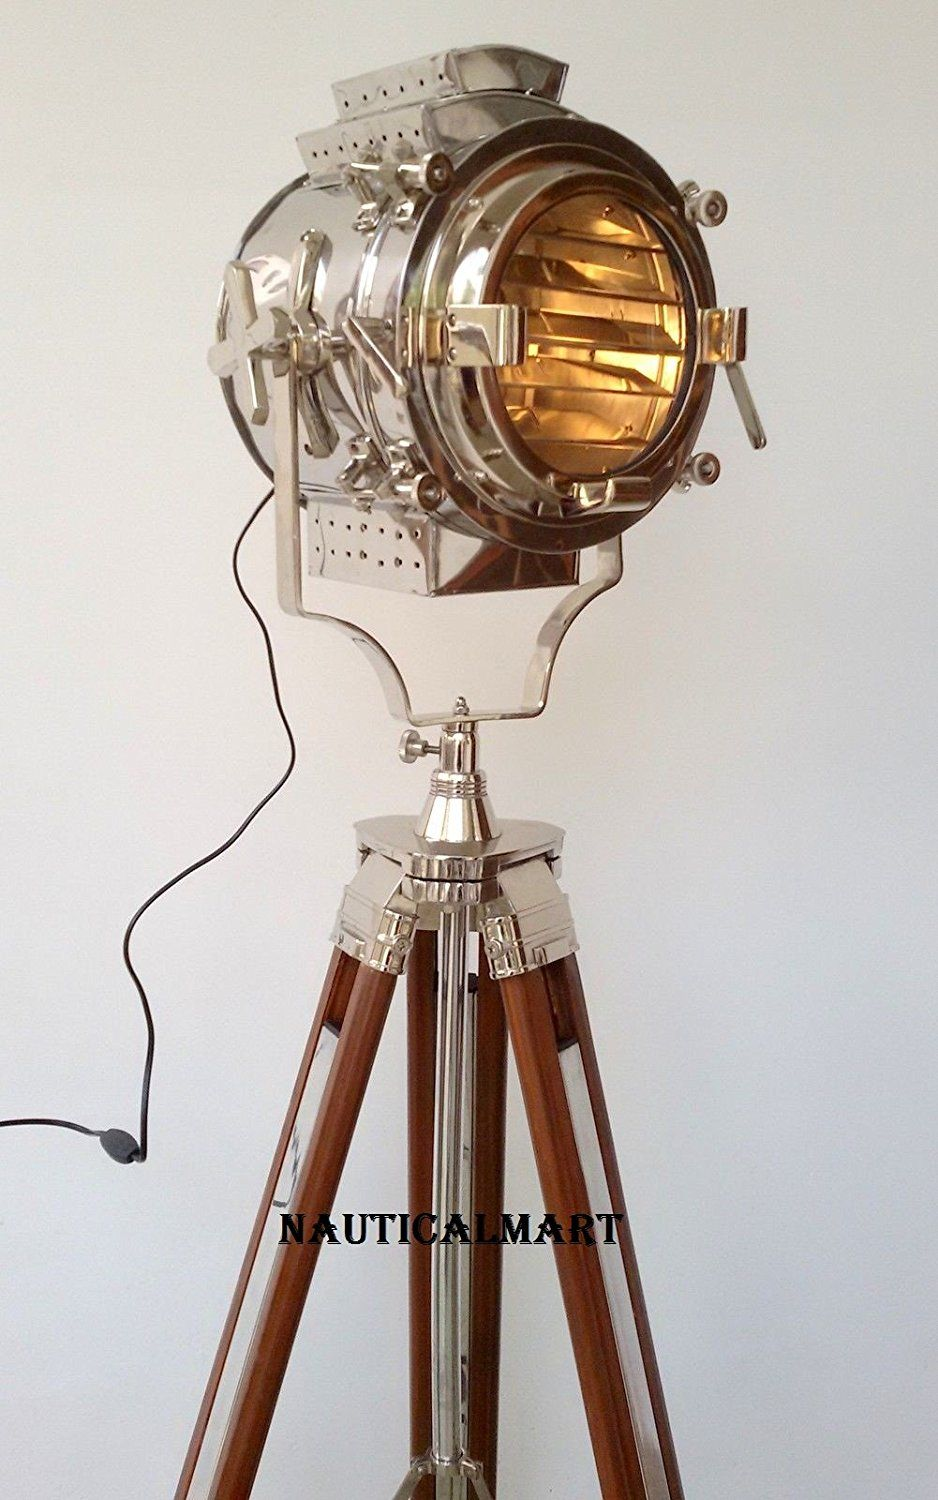 NauticalMart Hollywood SearchLight Spot Light Wooden Tripod